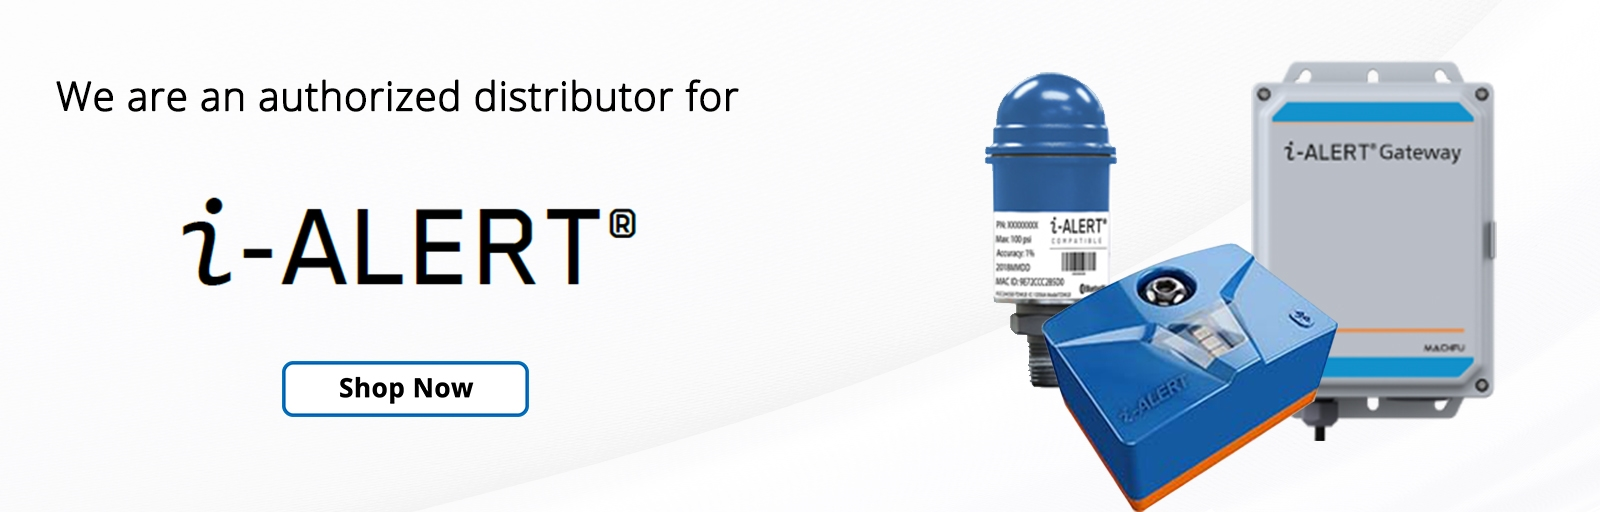 Radwell is an authorized distributor for i-Alert